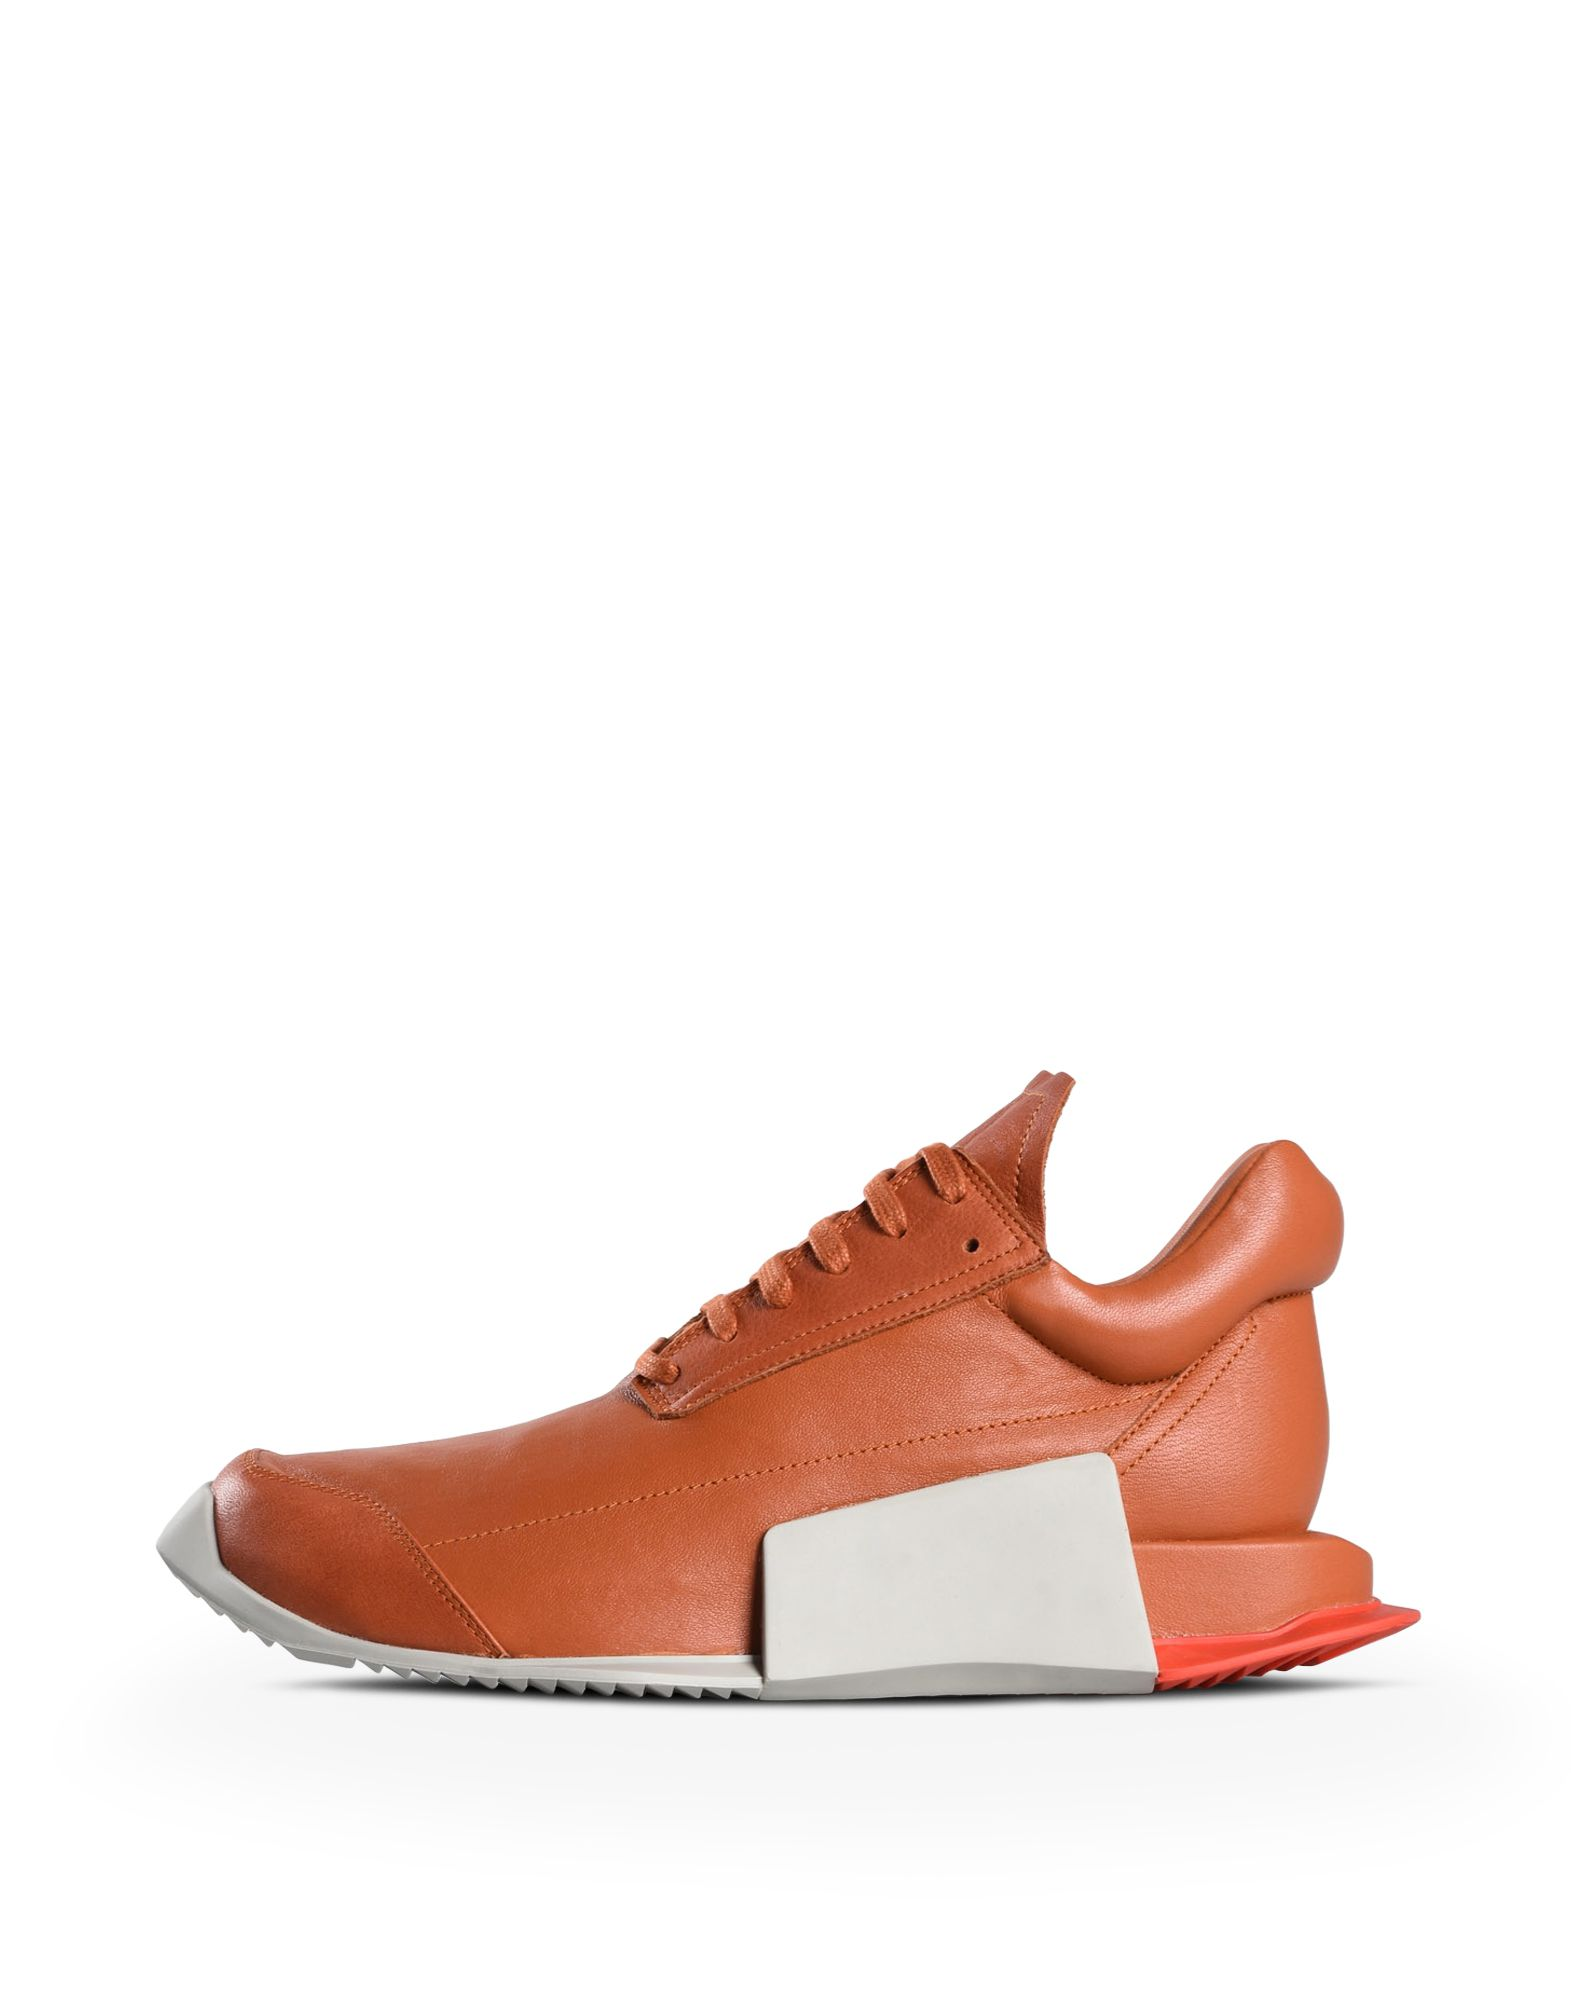 dc3bf27565a  RO LEVEL RUNNER LOW Sneakers | Adidas Y-3 Official Site